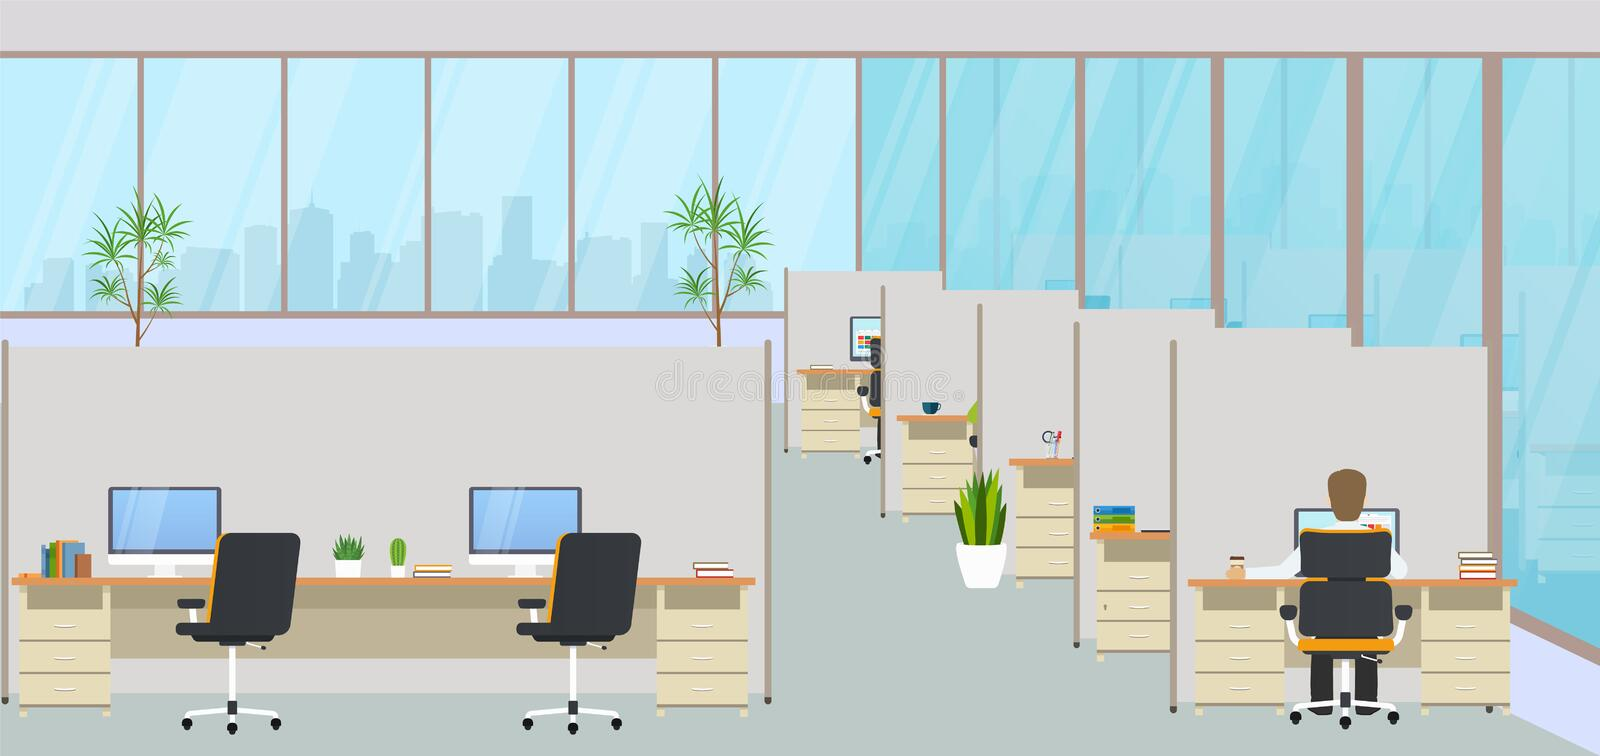 Modern office center with workplaces and employees. Empty workspace for co-working. stock illustration